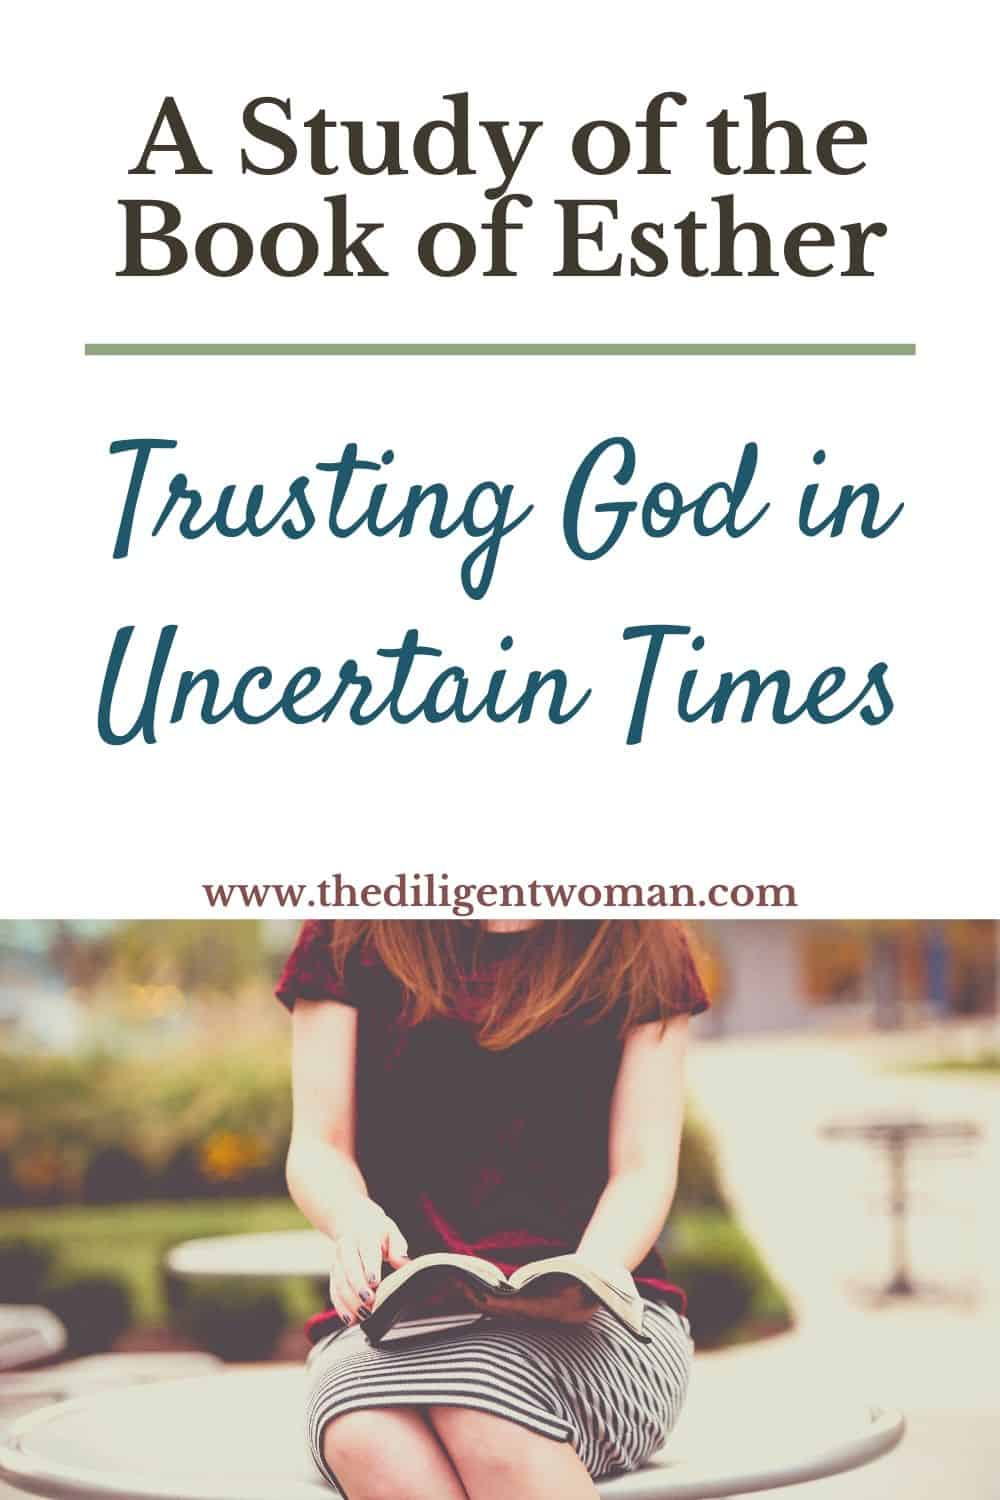 Study the Book of Esther to learn how to thrive with faith and courage in times of uncertainty. The Diligent Woman study walks you through the entire book of Esther. See how faith and obedience are the foundation for courage in difficult times. Join the study today!